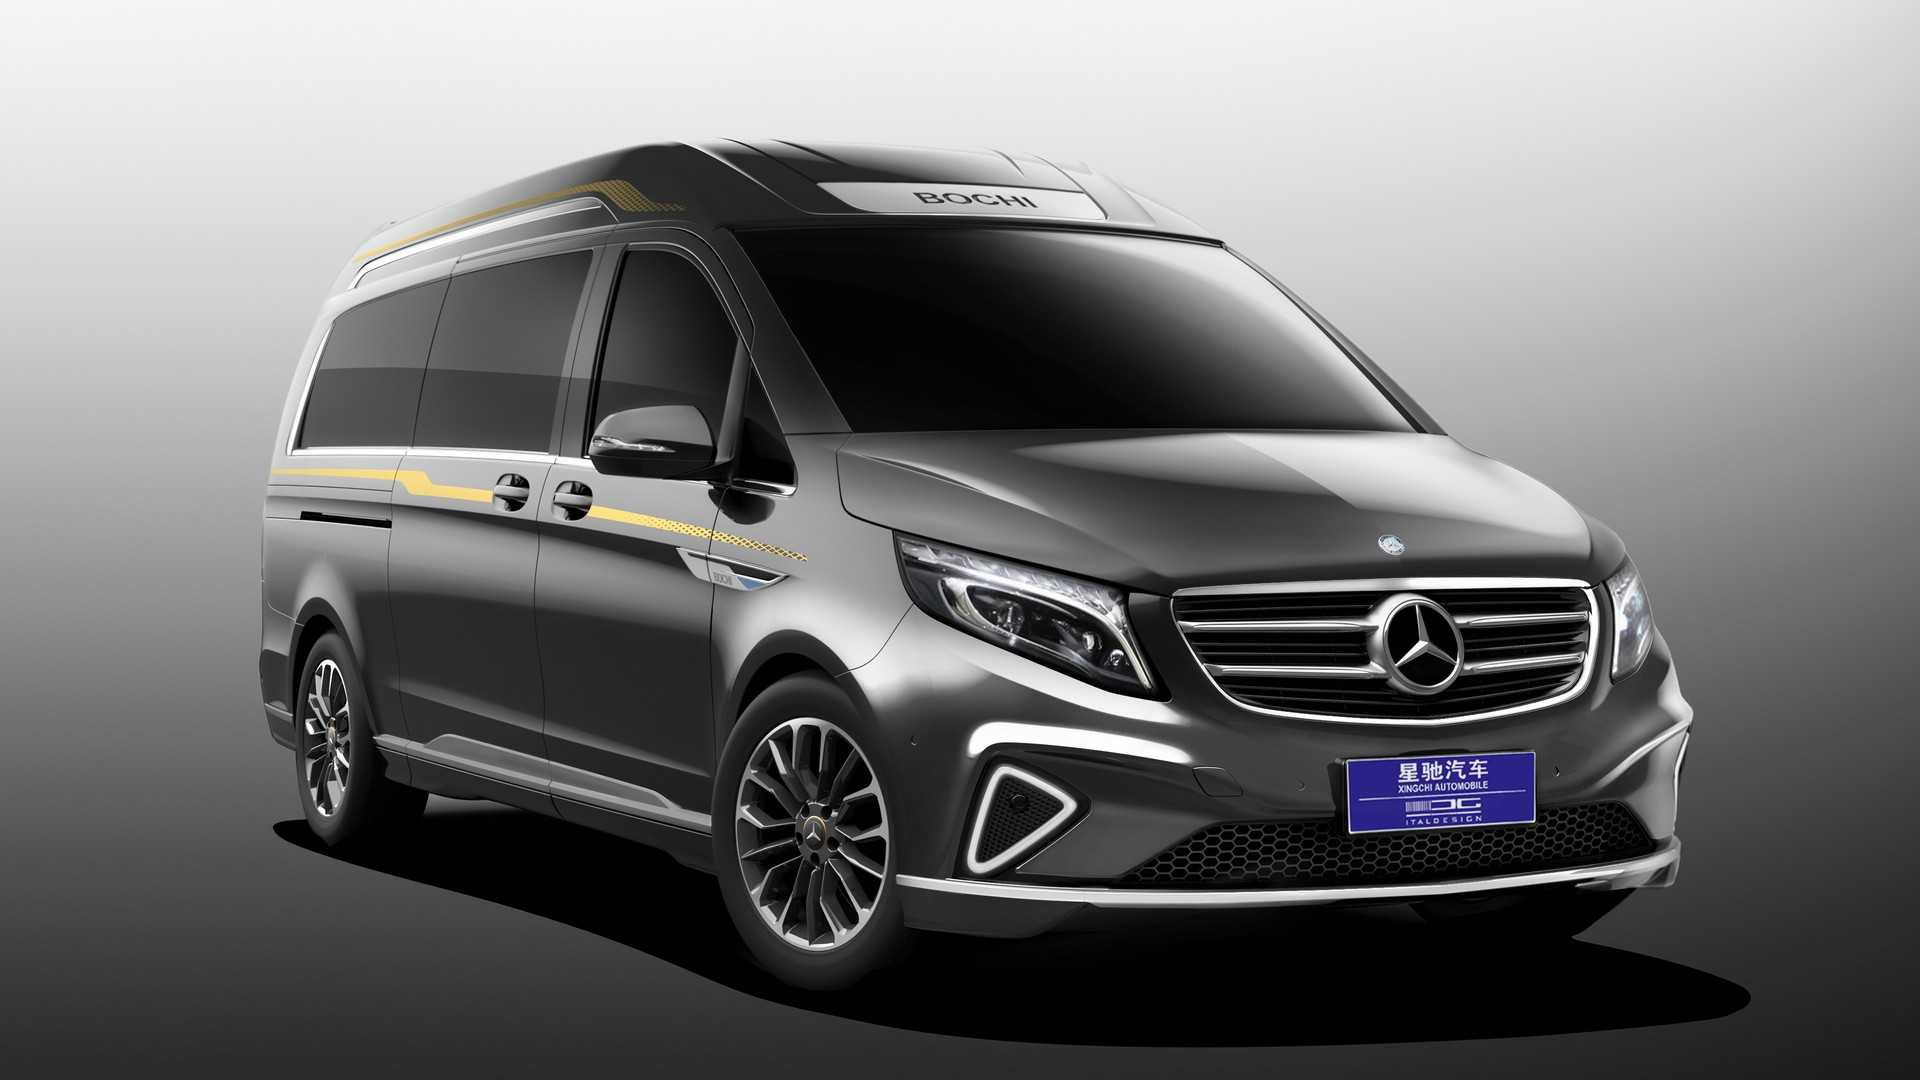 Italdesign Makes Special Version of Mercedes V-Class